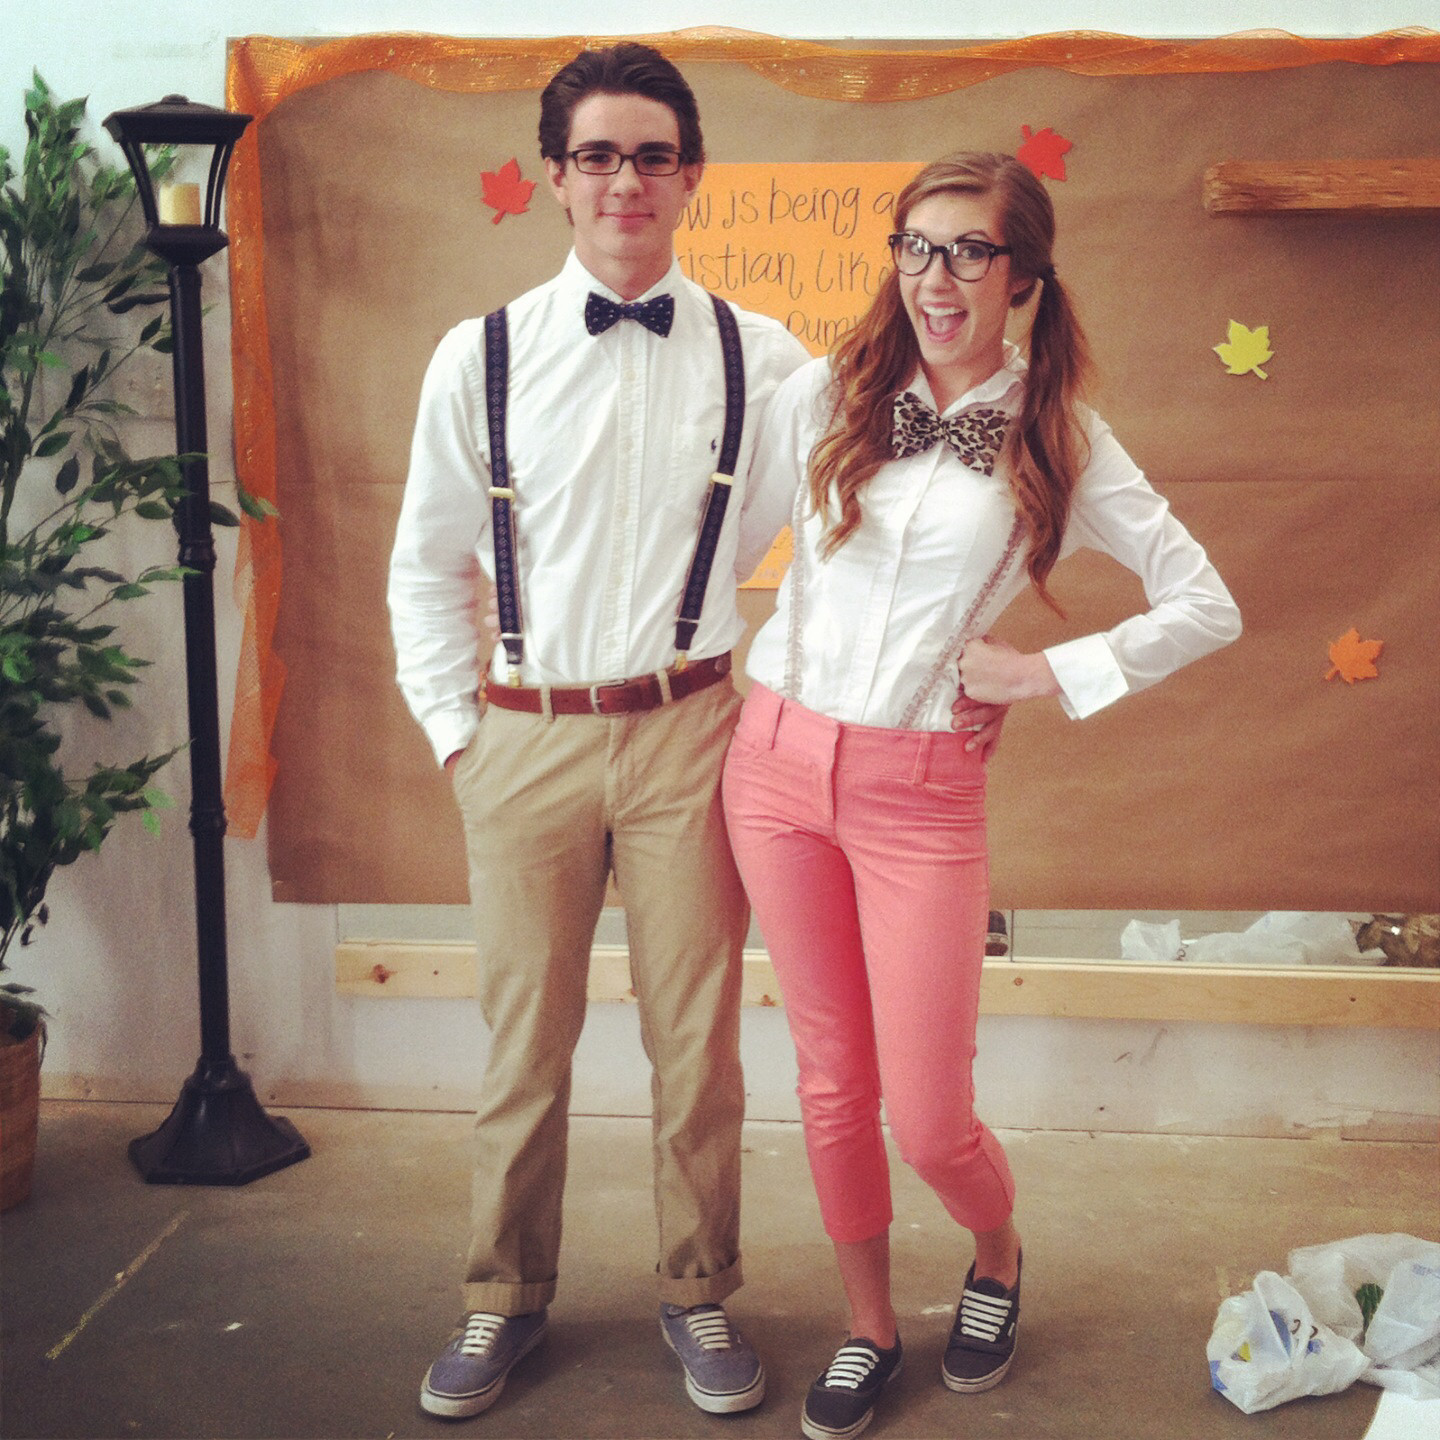 Best ideas about Nerd Costume DIY . Save or Pin 8 Cheap Halloween Costumes to Make in Minutes Now.